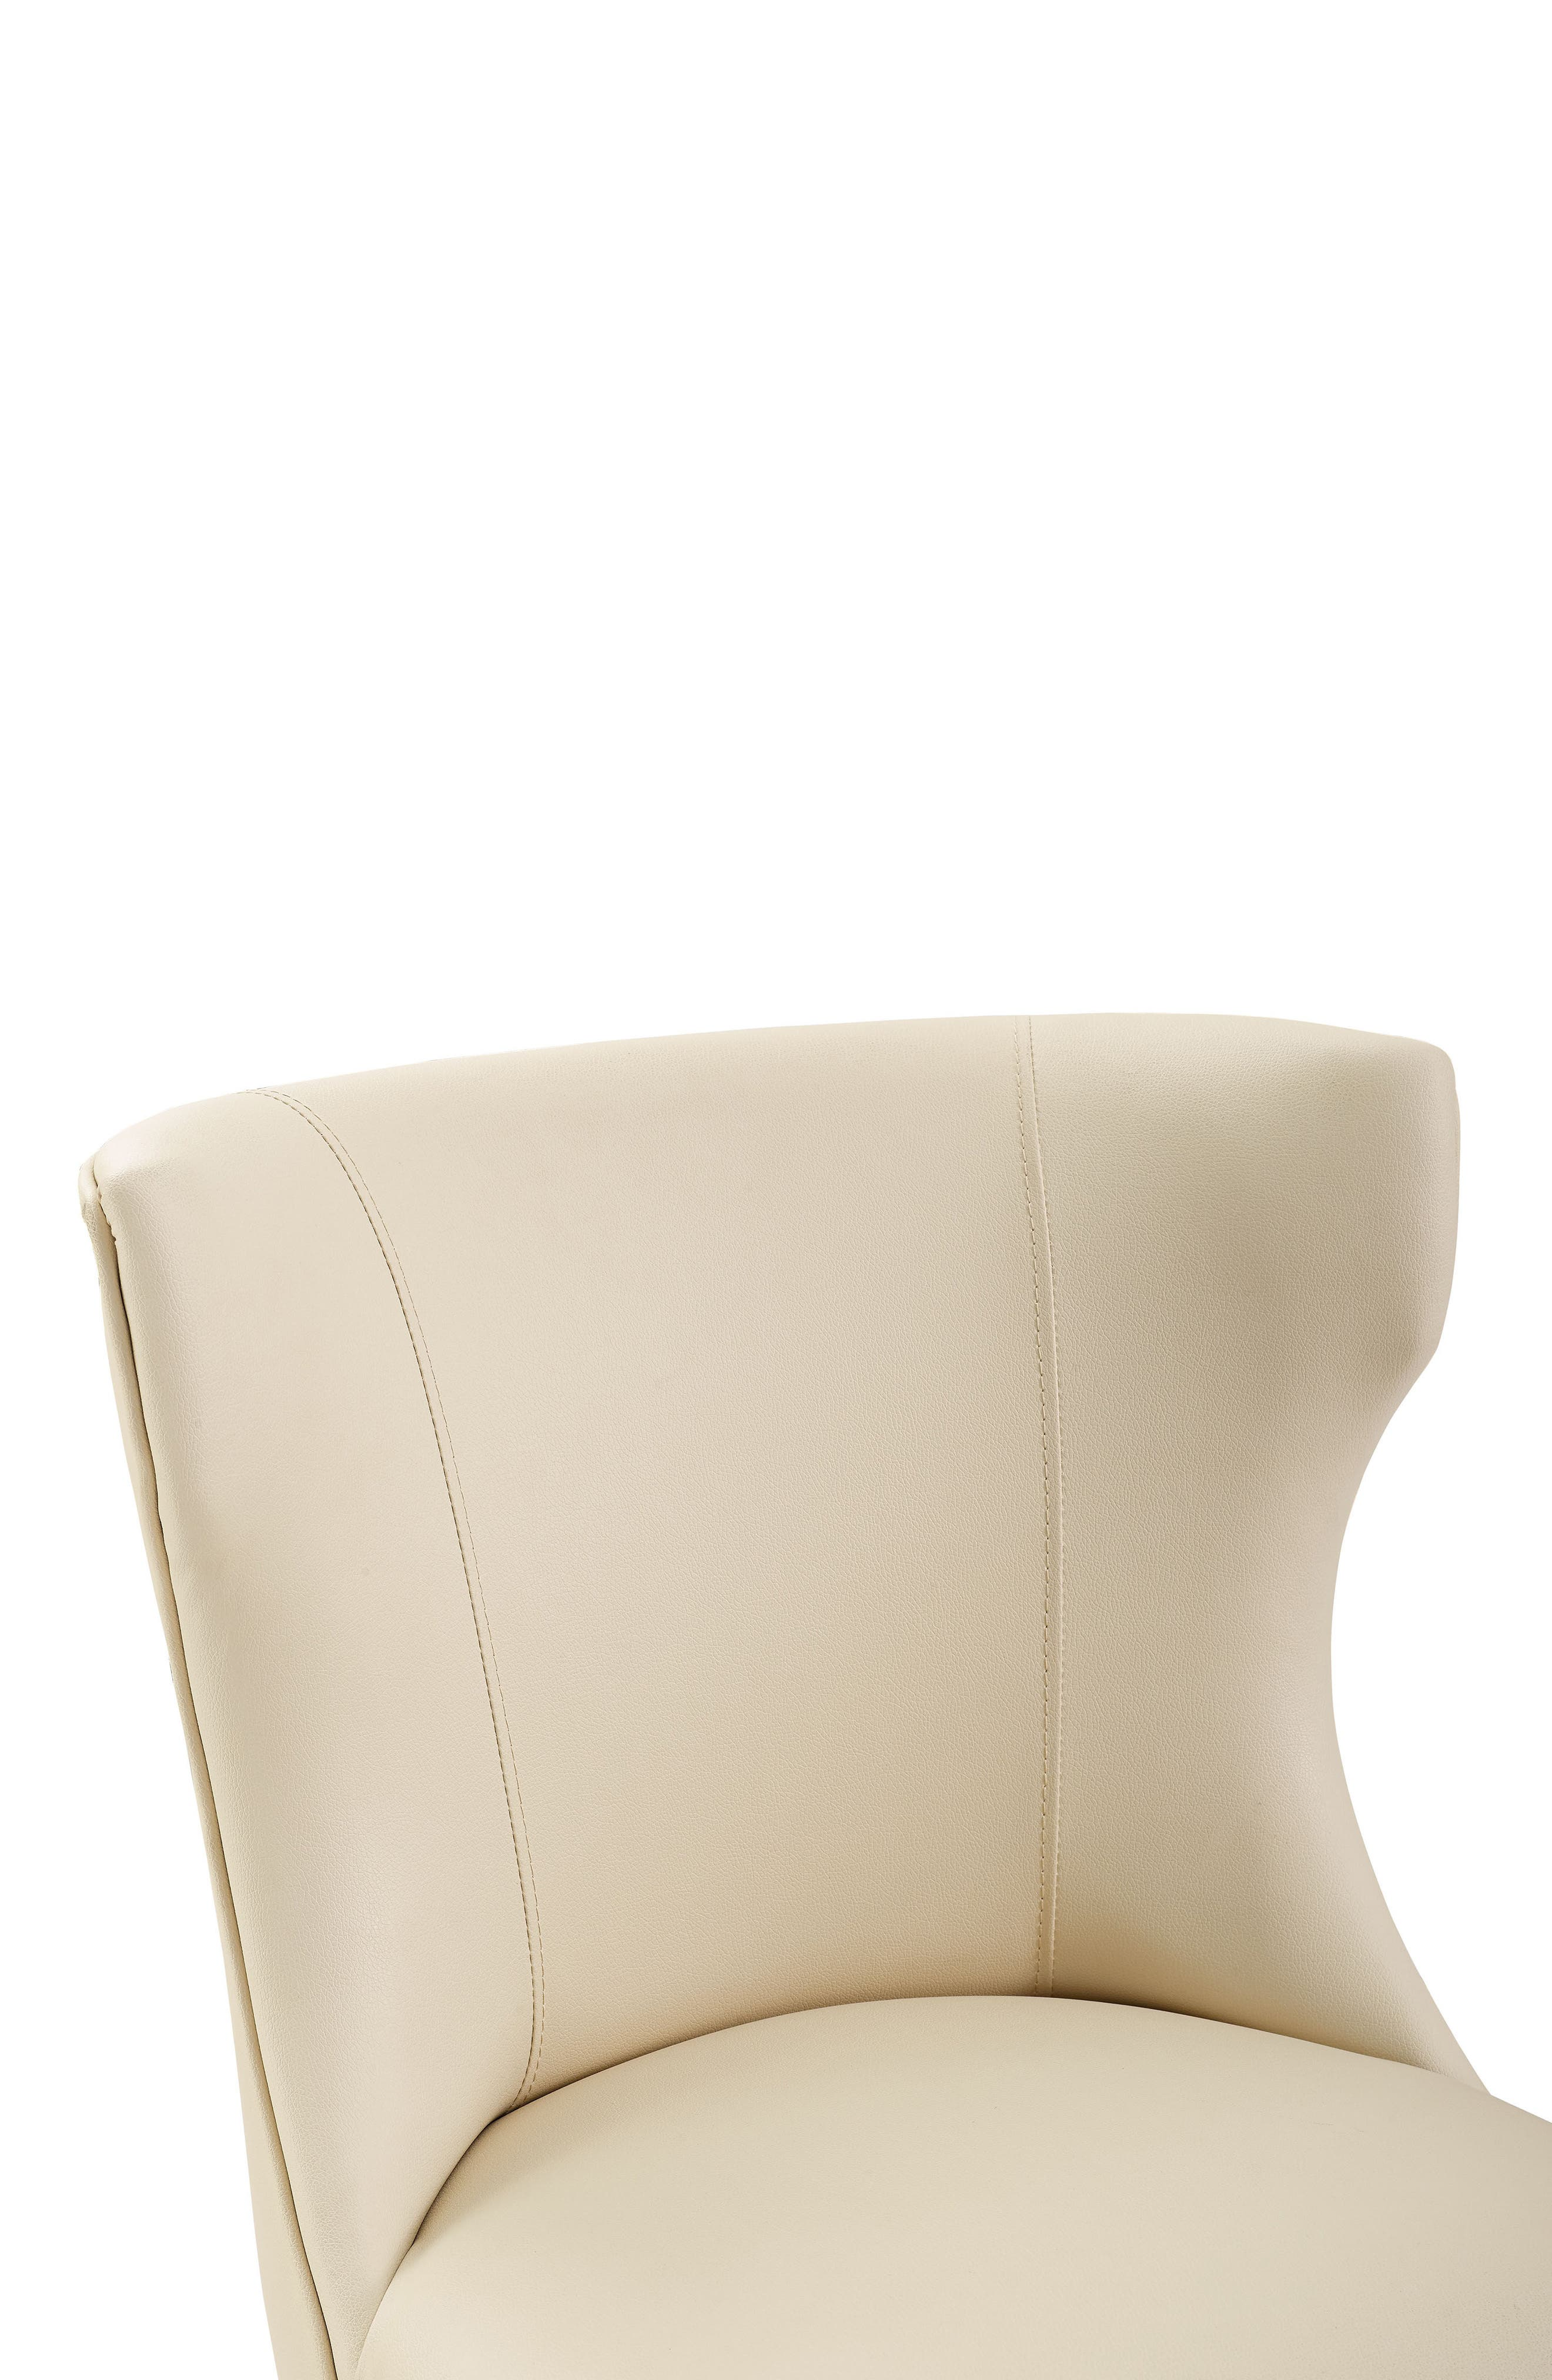 Tilson Bar Stool,                             Alternate thumbnail 2, color,                             Cream